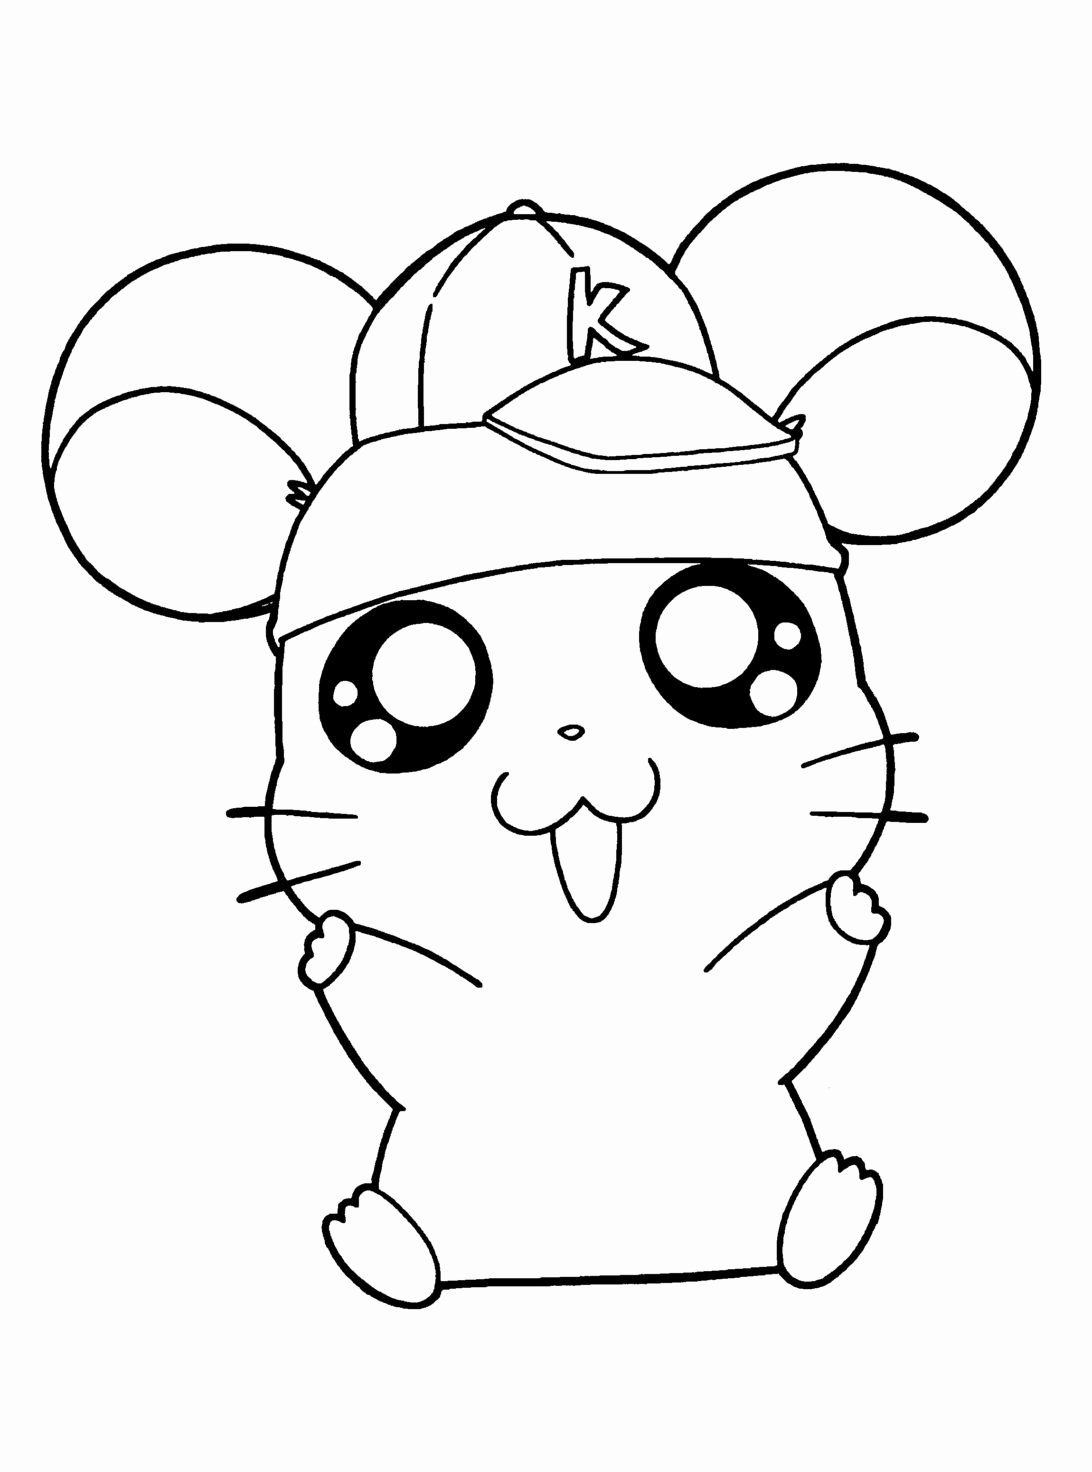 Kawaii Coloring Pages Animals Best Of Coloring Pages Hamster Coloring Best For Kids Cute Kawai In 2020 Animal Coloring Pages Halloween Coloring Pages Dog Coloring Page